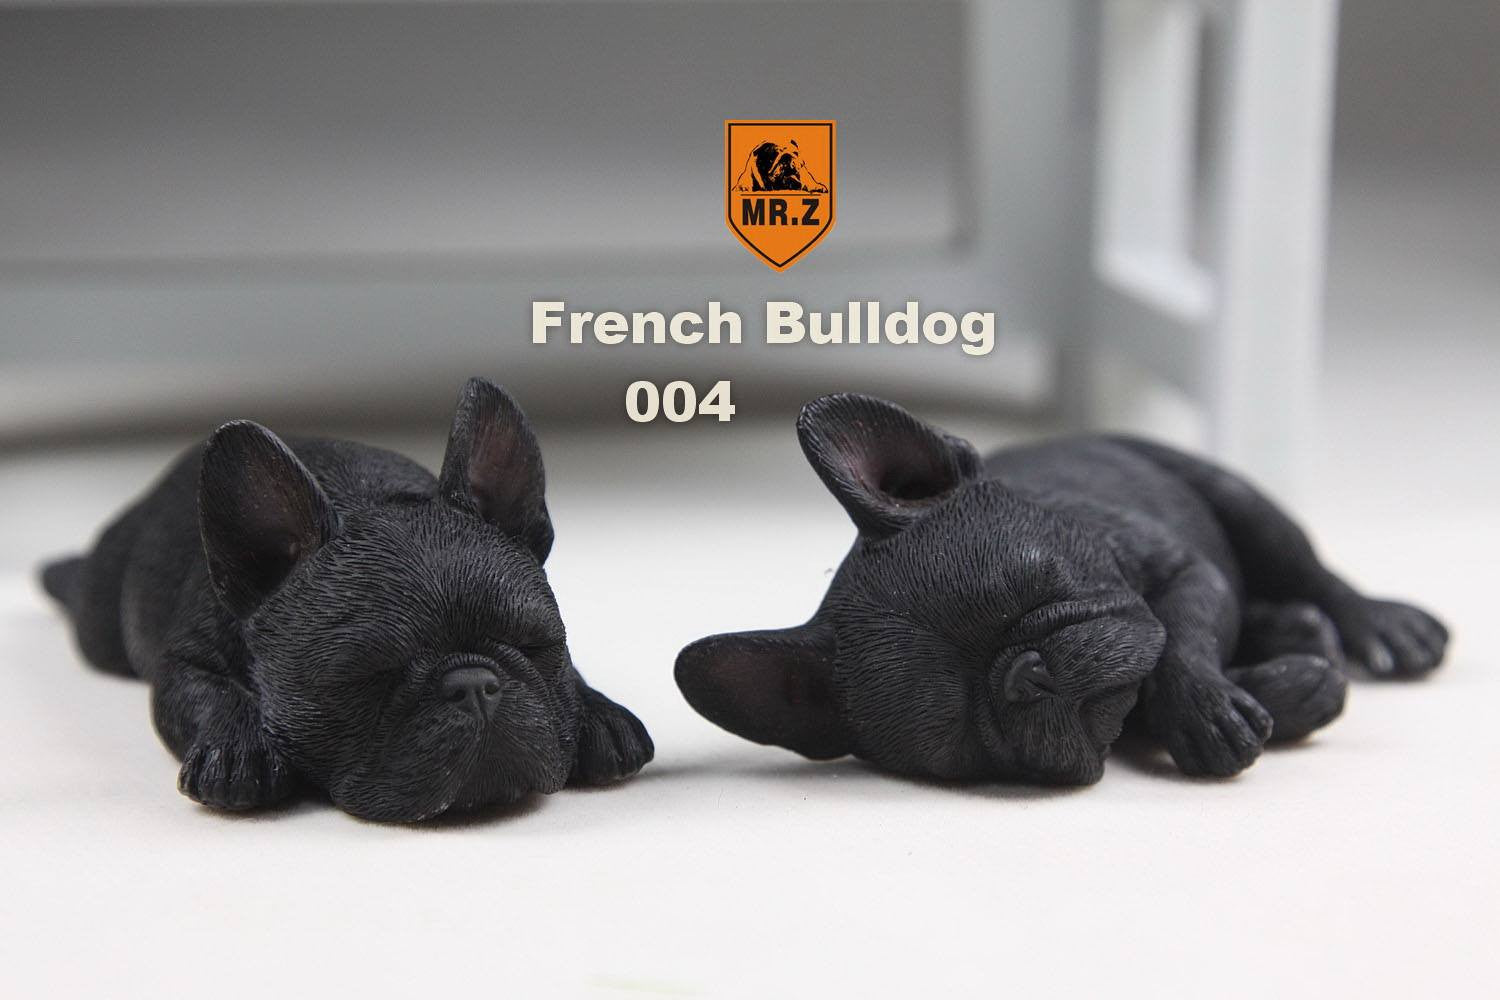 MR.Z - Real Animal Series No.9 - 1/6th Scale French Bulldog (Sleep Mode) 001-005 - Marvelous Toys - 21